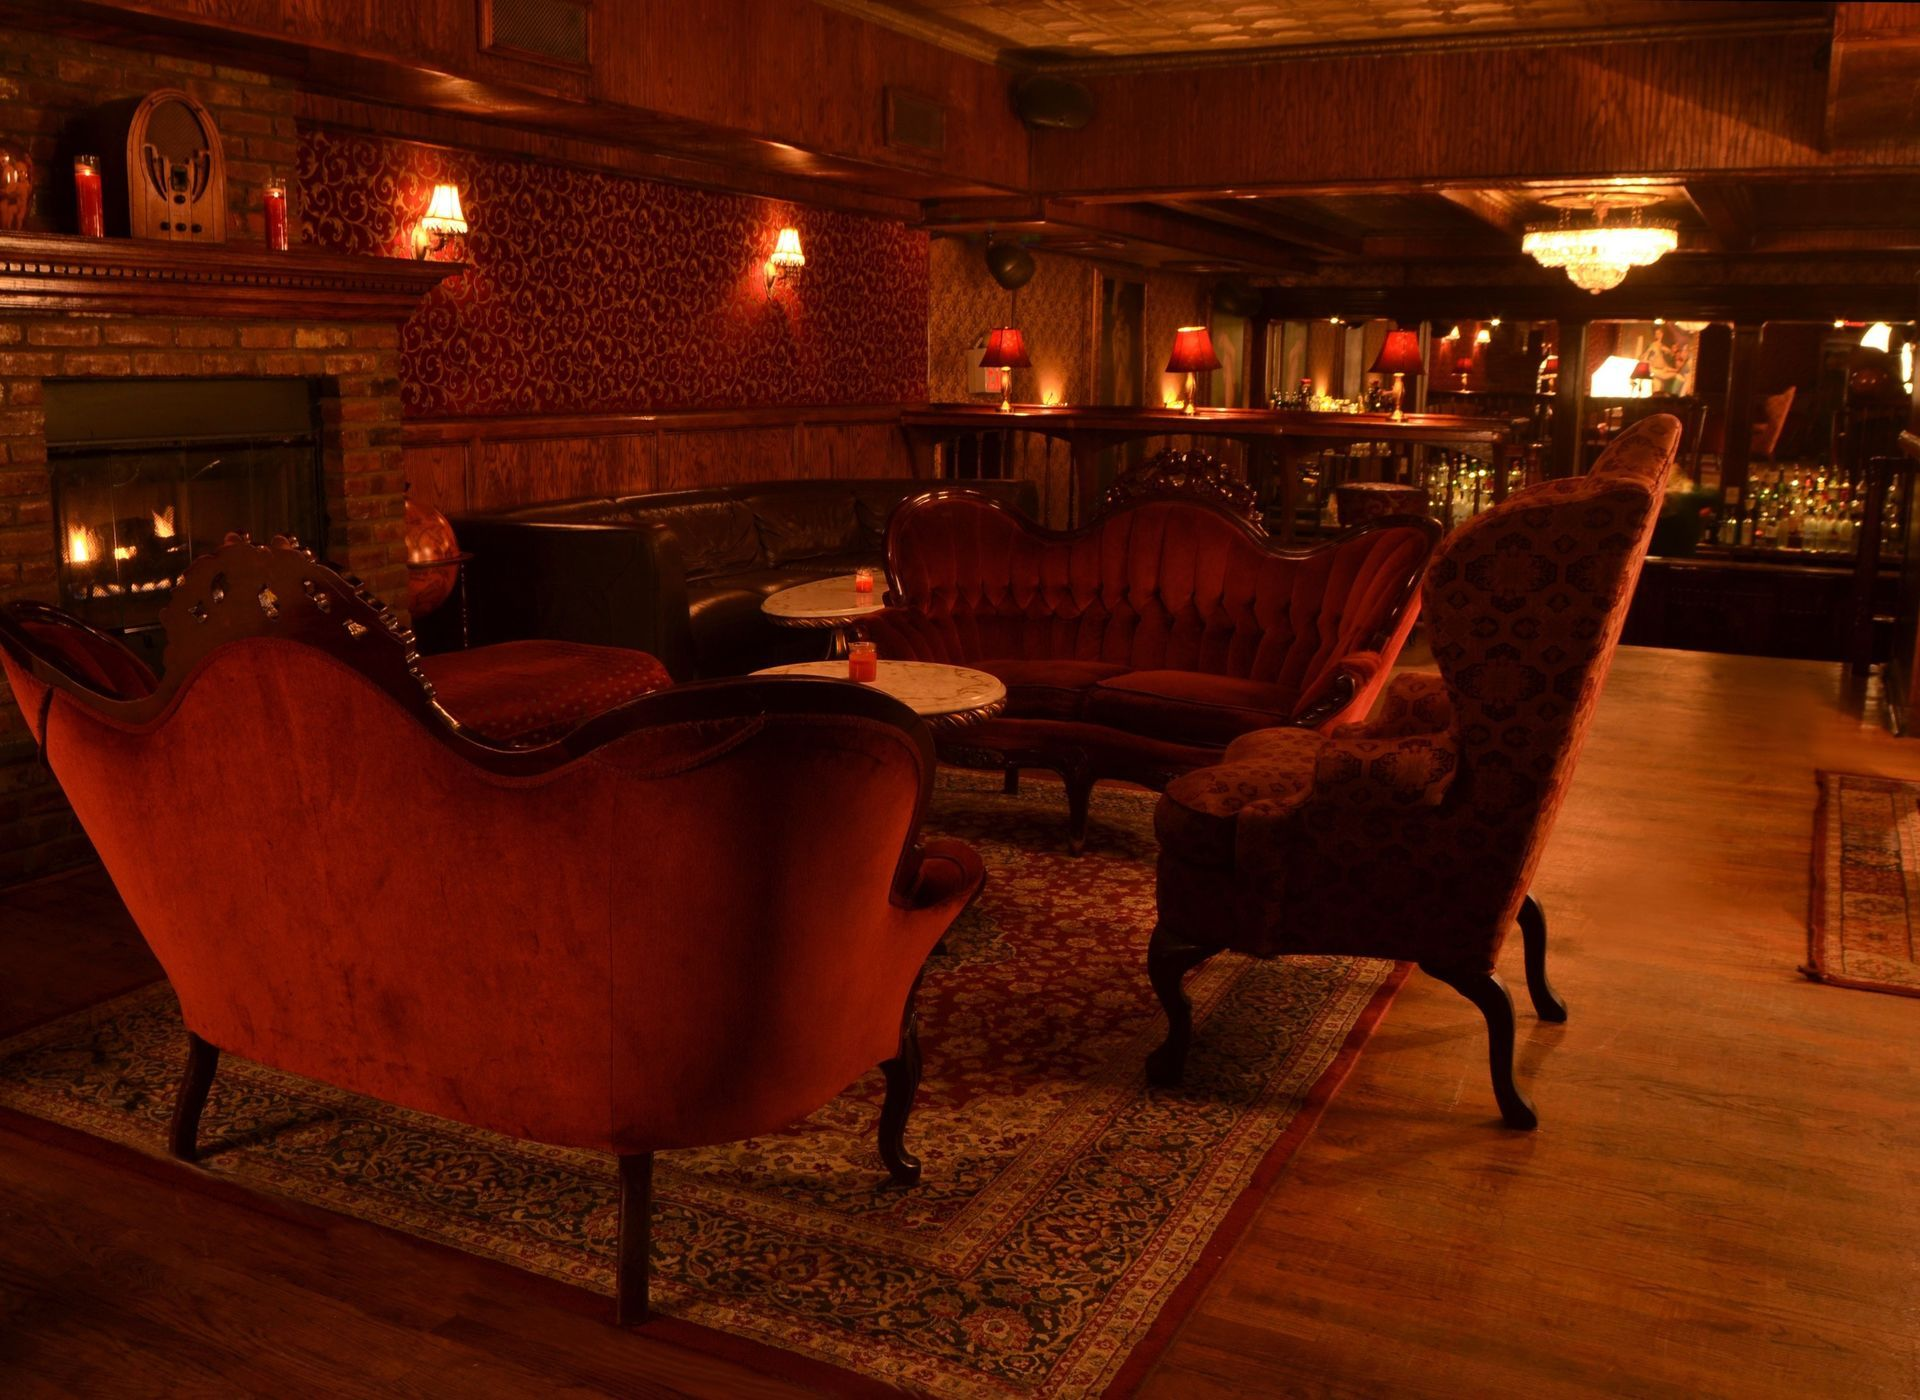 Best Secret Bars In New York Nyc Bars Secret Bar Hidden Bar